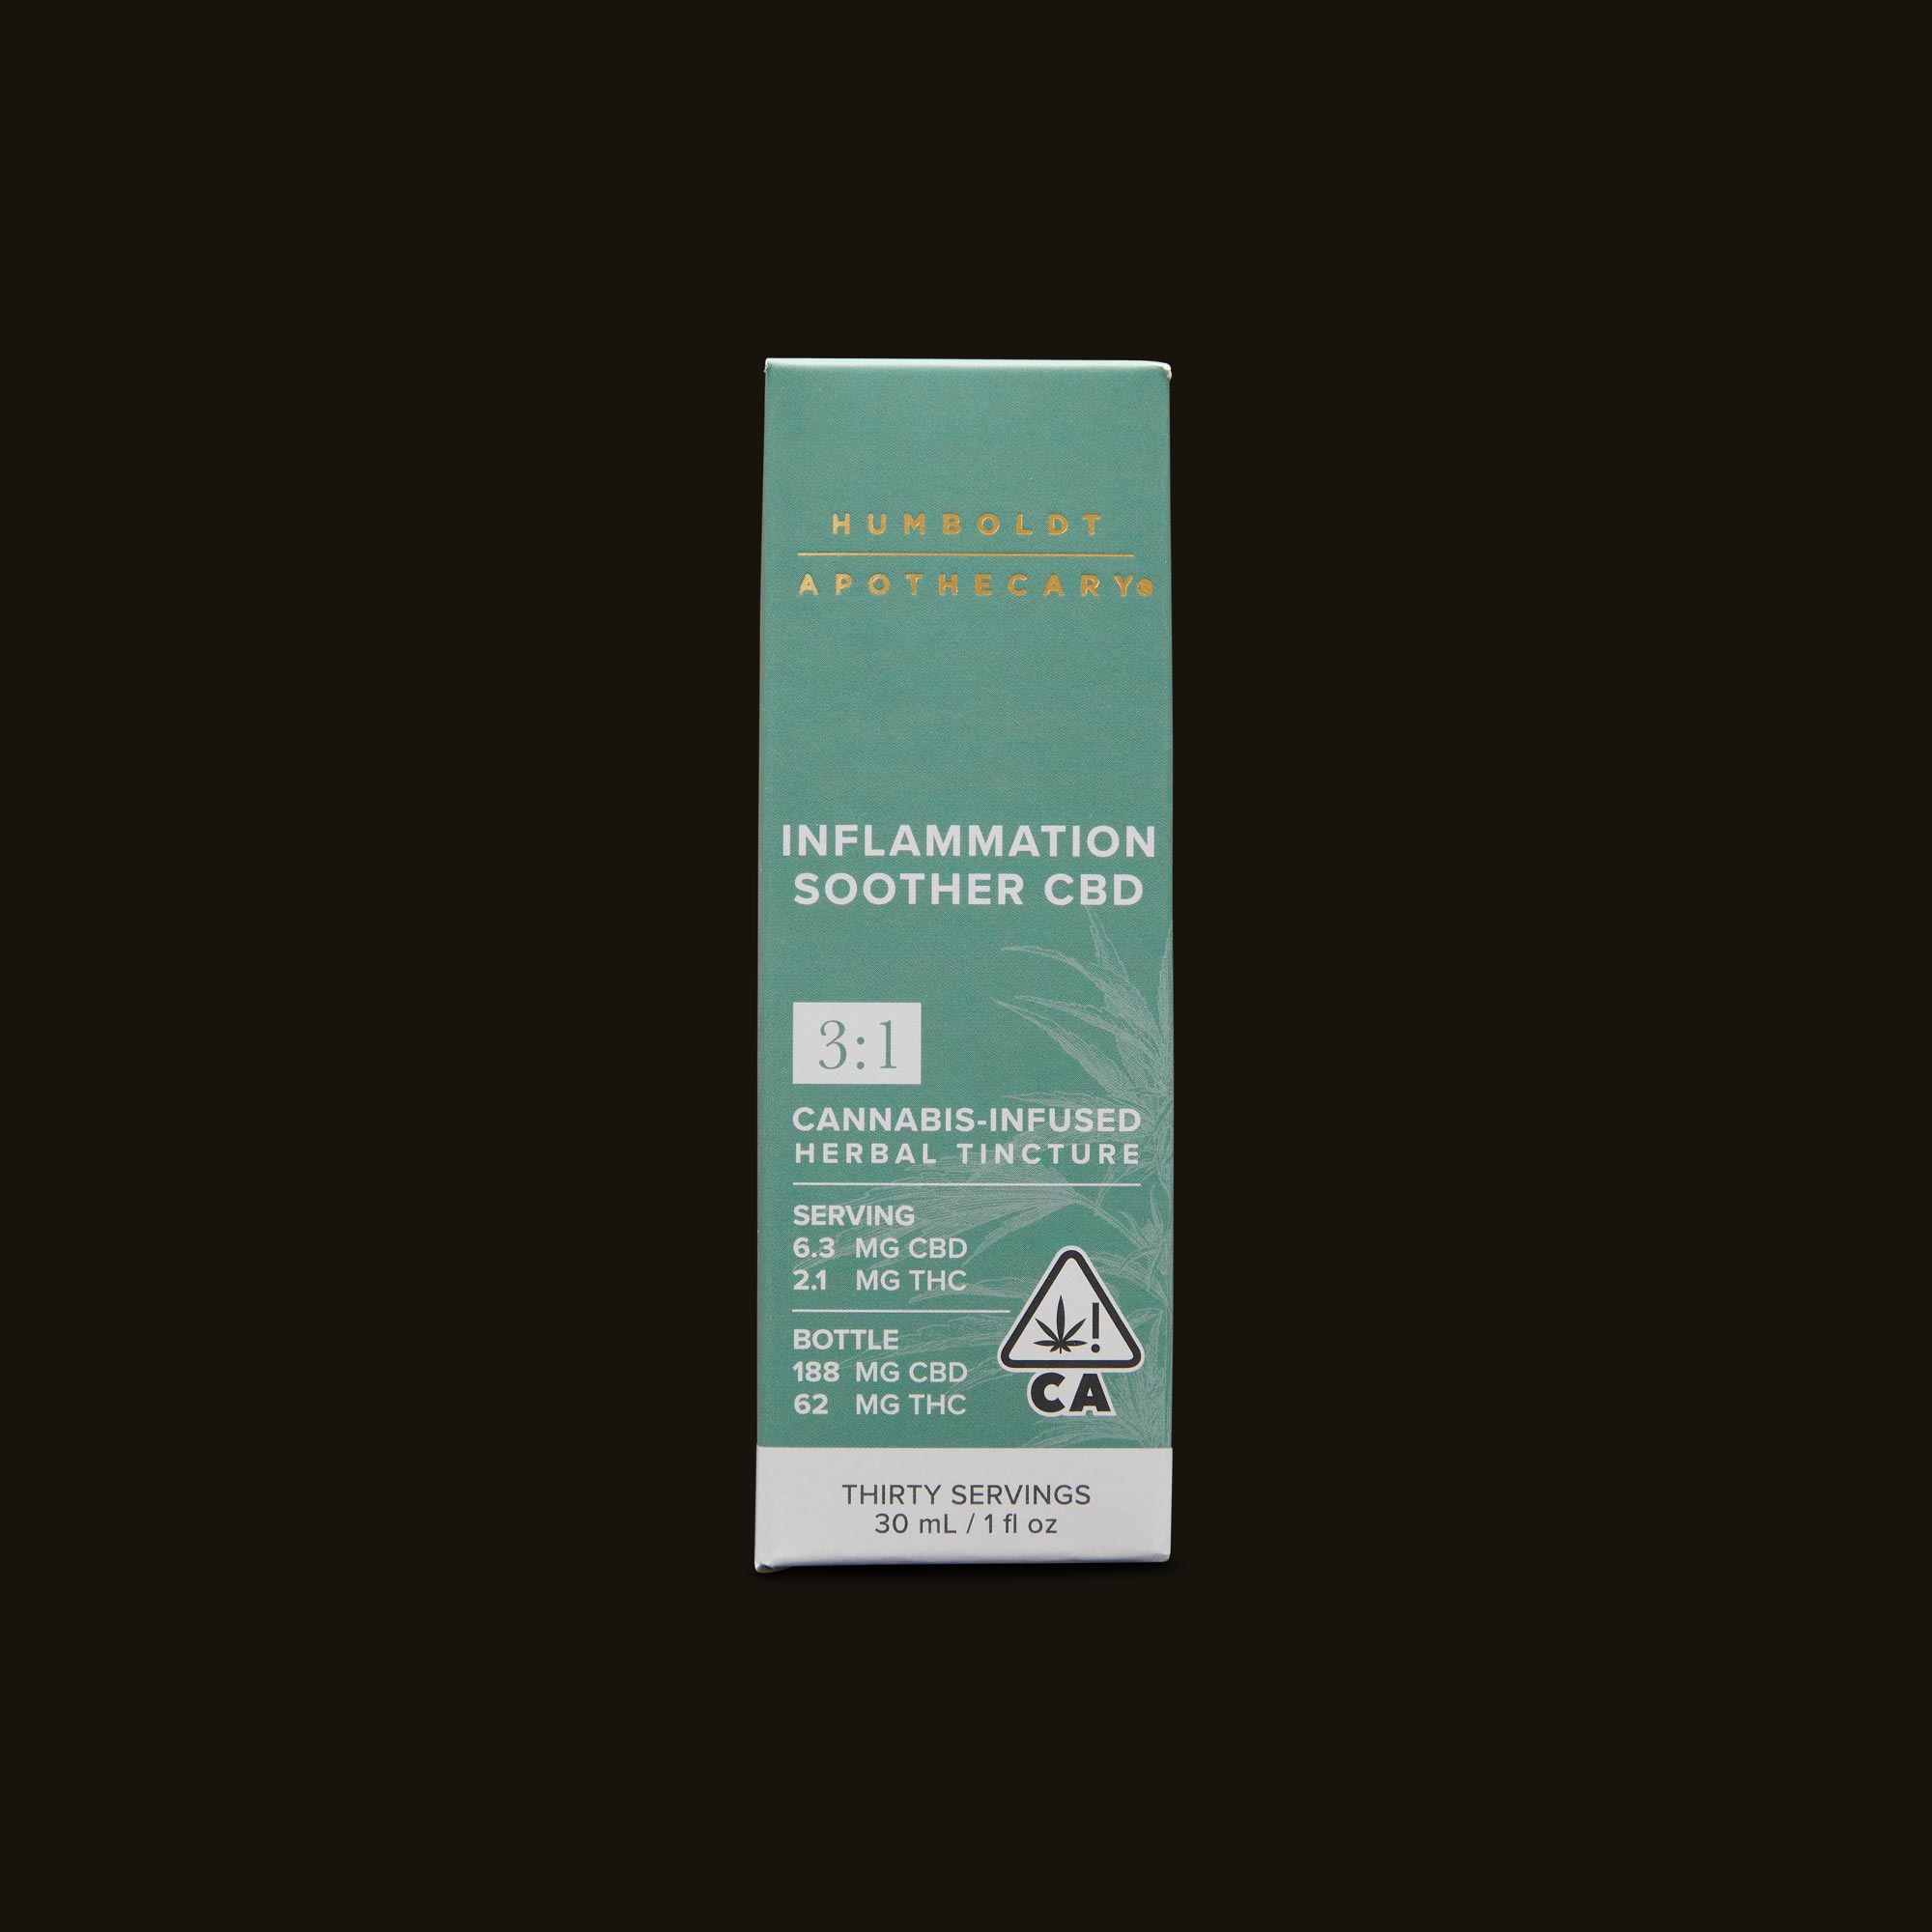 Humboldt Apothecary Inflammation Soother CBD 3:1 Front Packaging